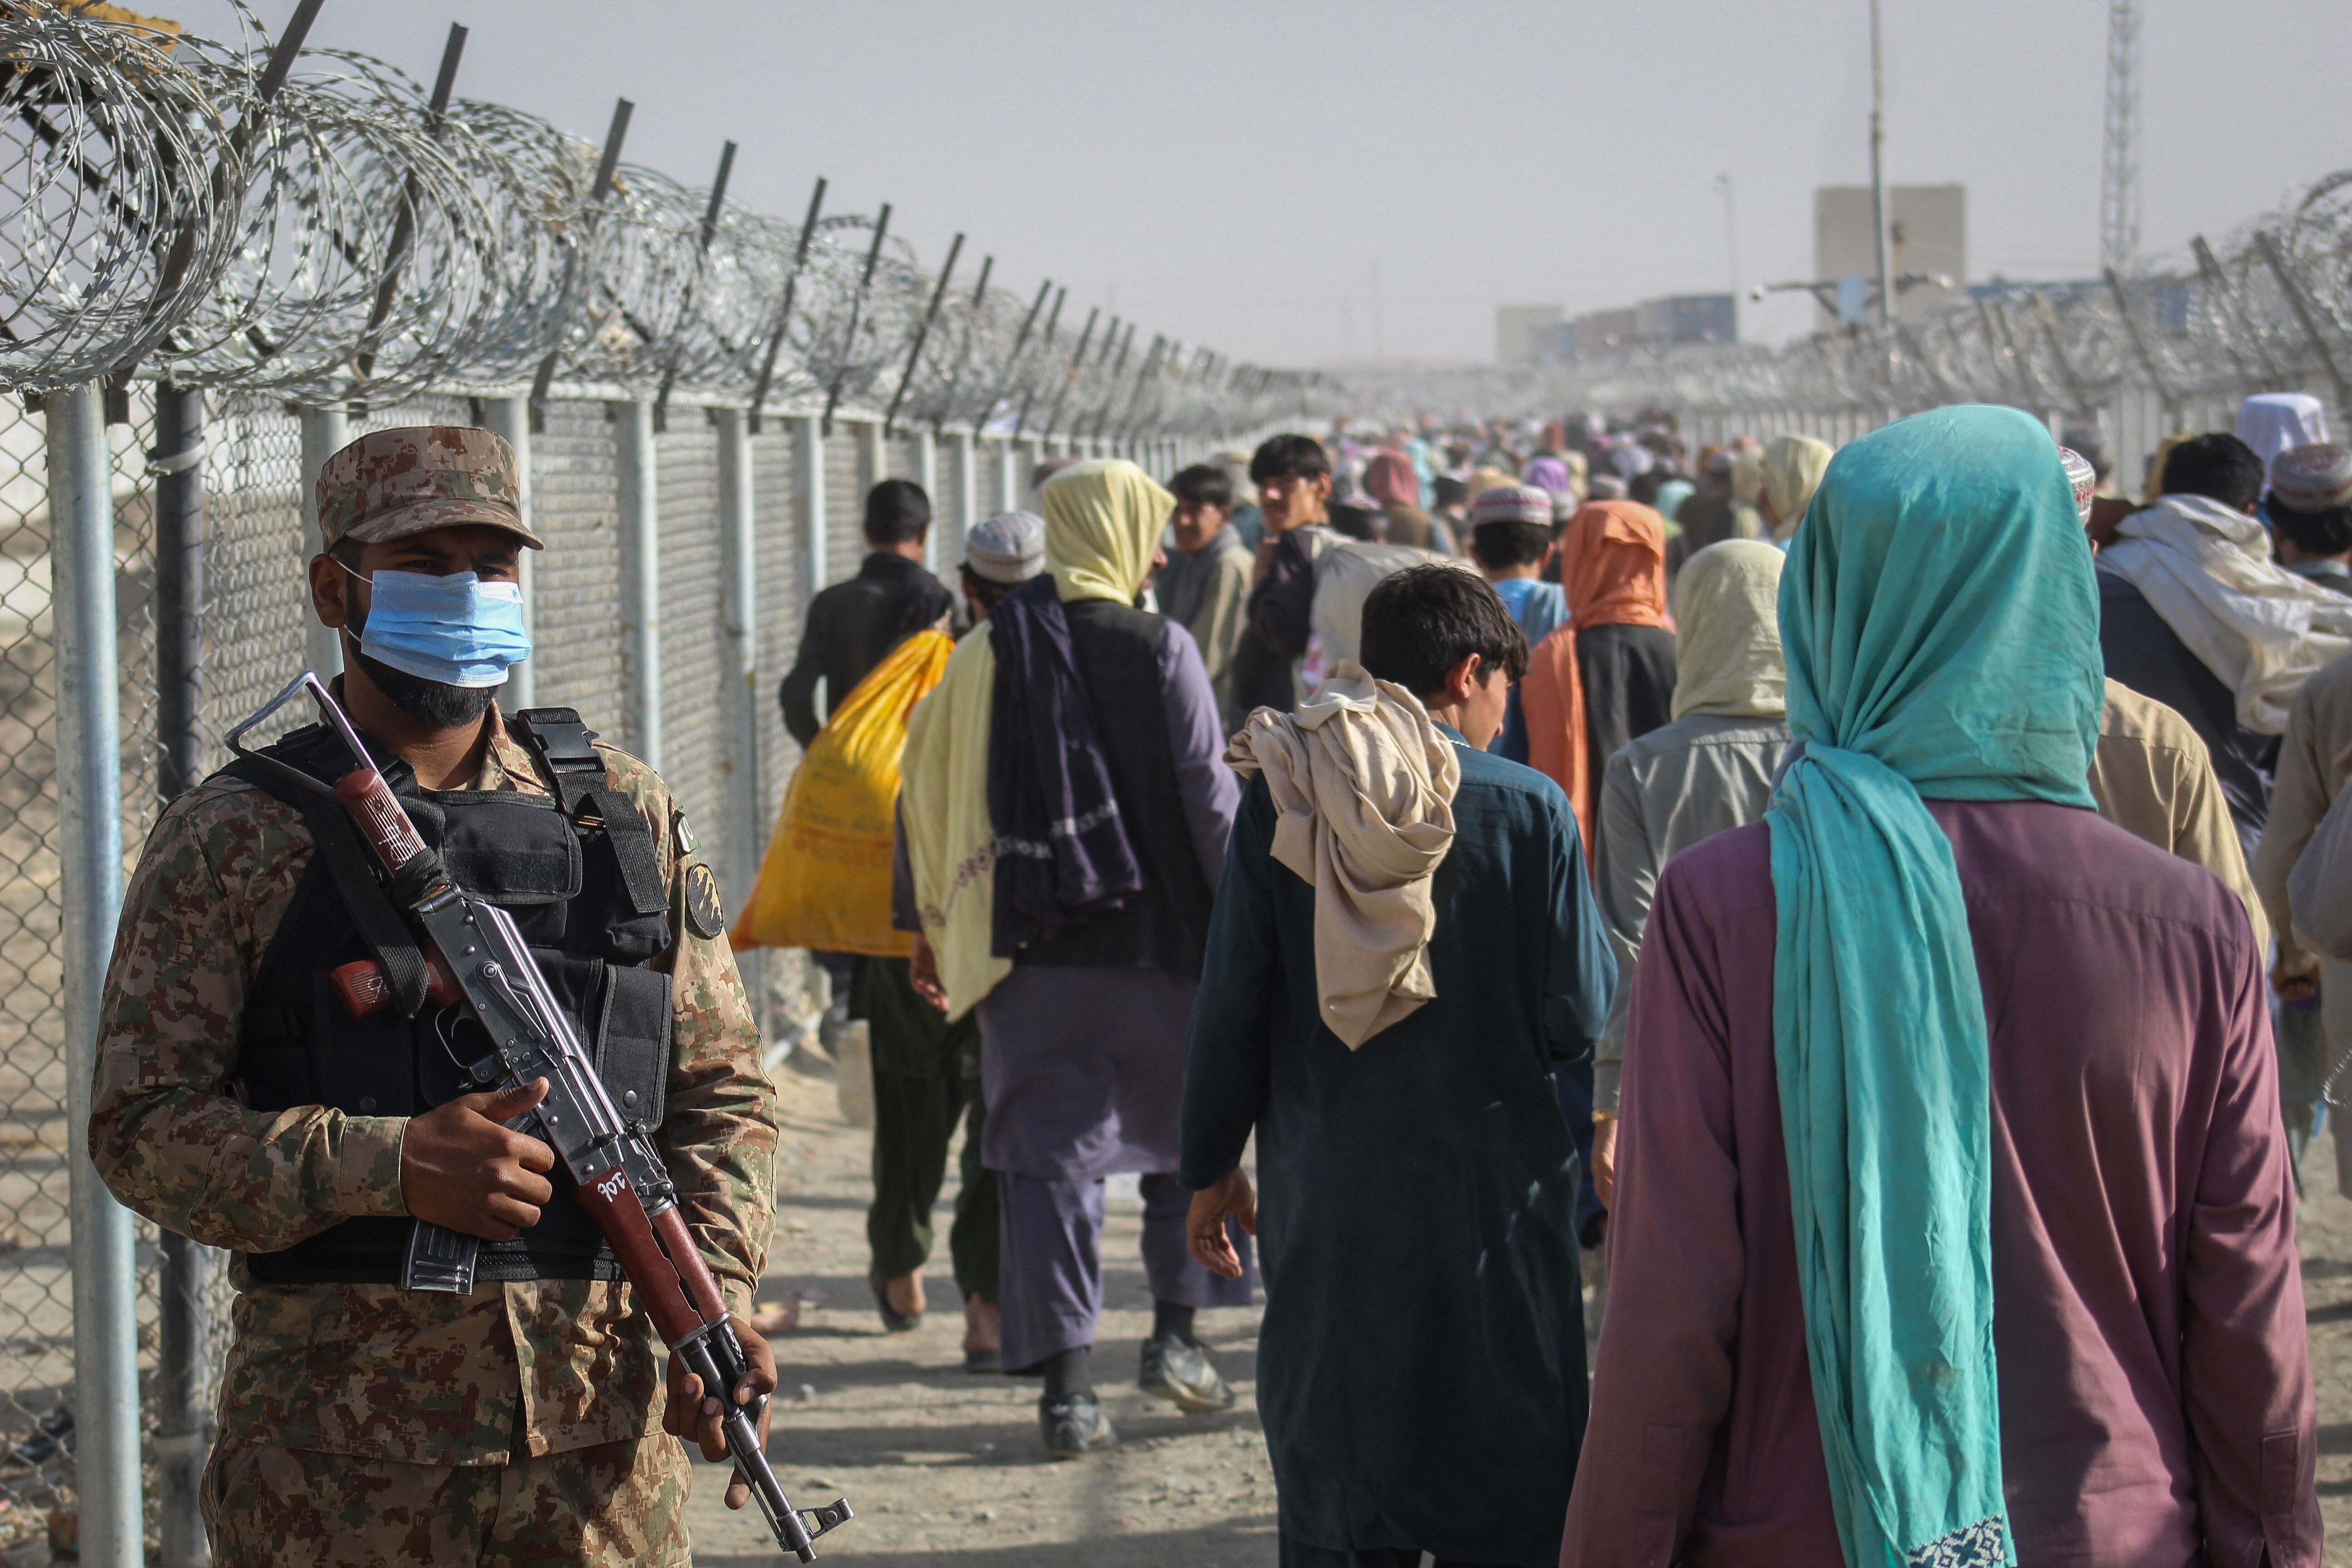 Foreign Office To Help Trapped Afghans To Third Countries Before Transfer To UK